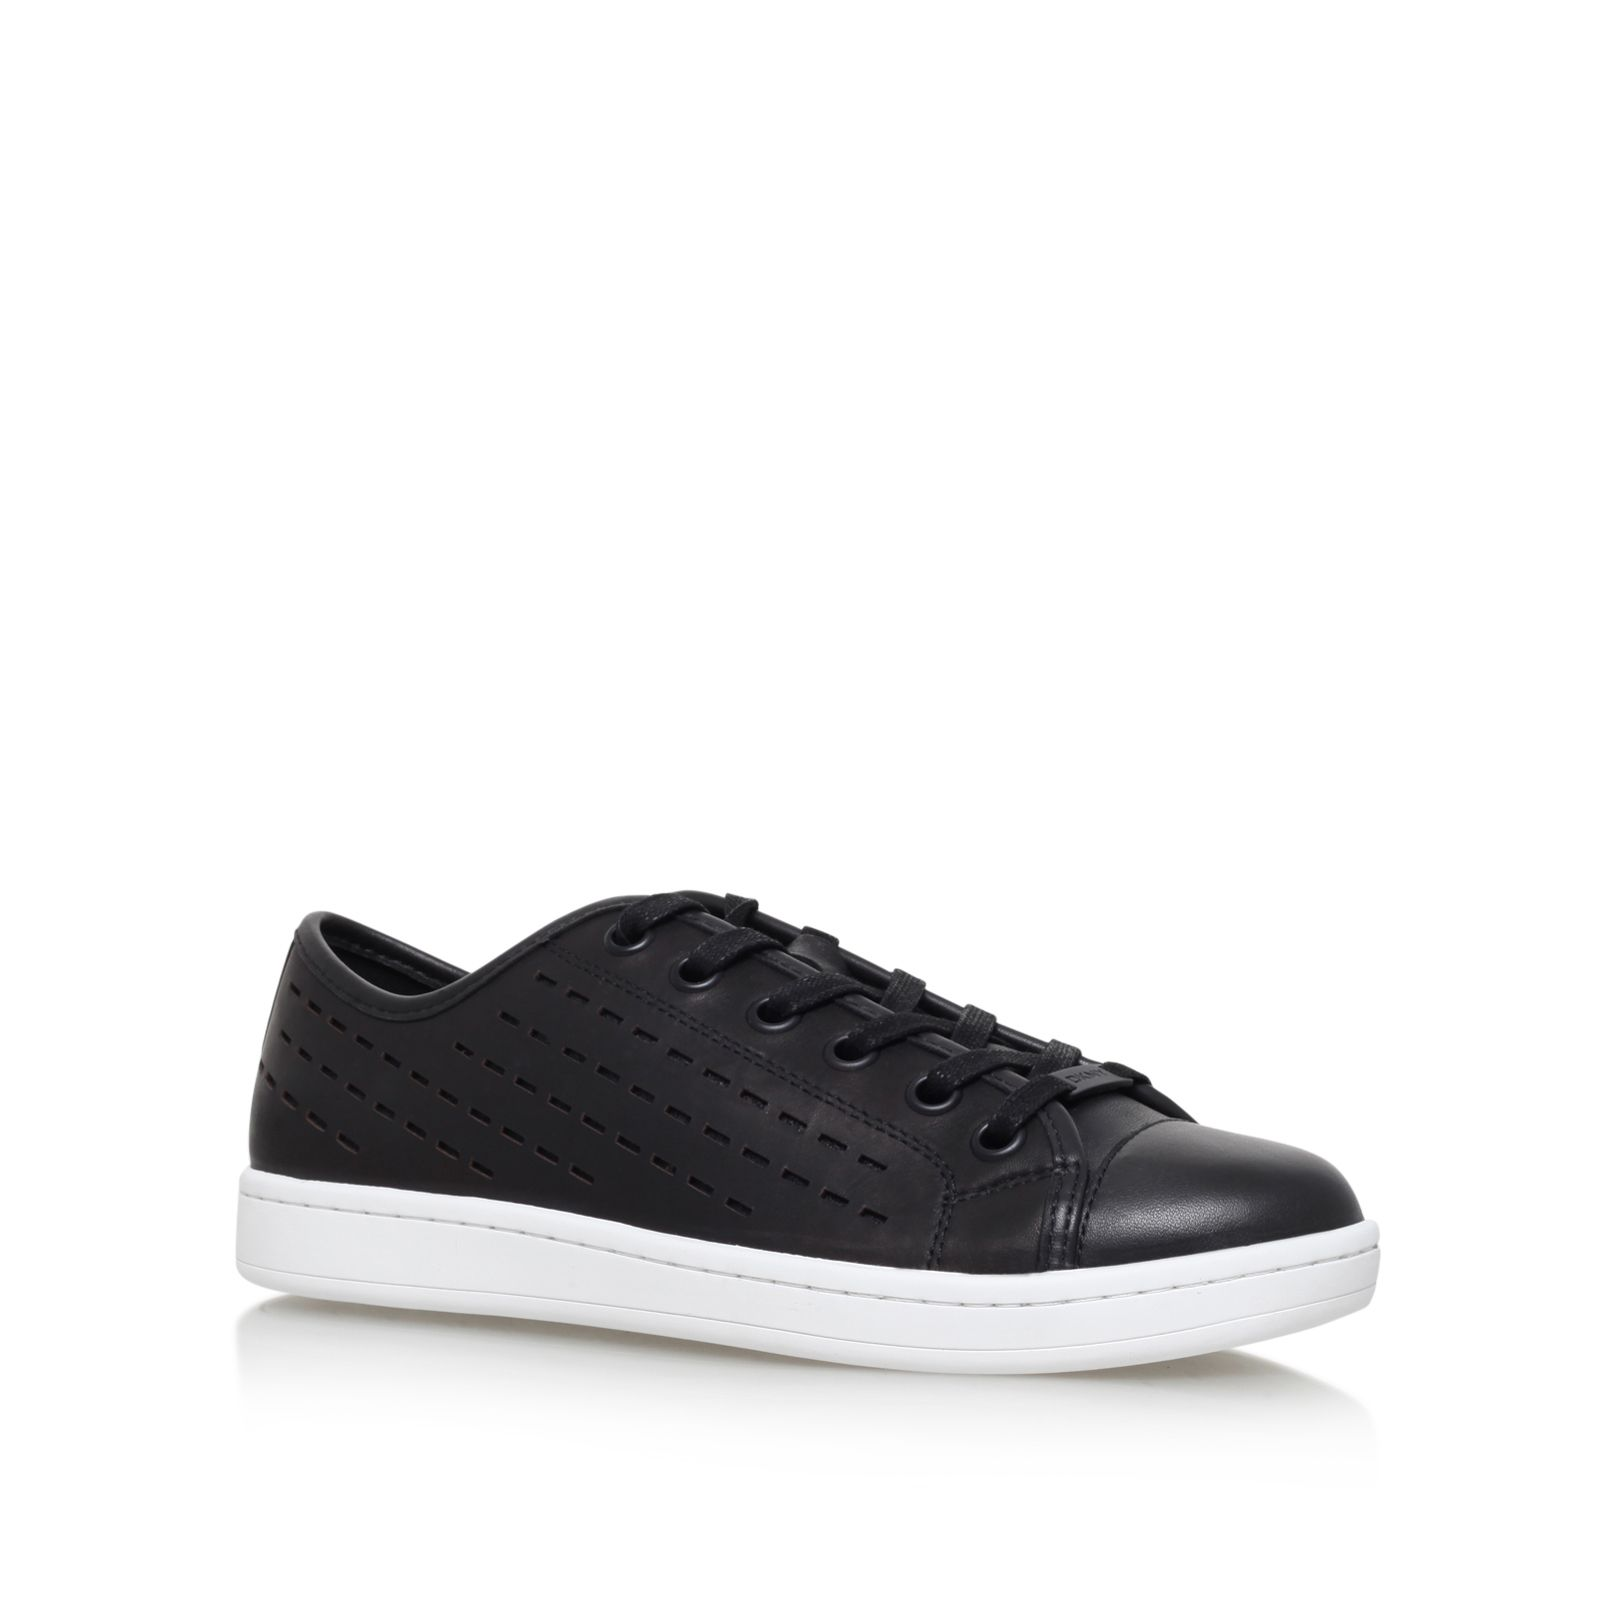 DKNY Baylee flat lace up sneakers Black Leather